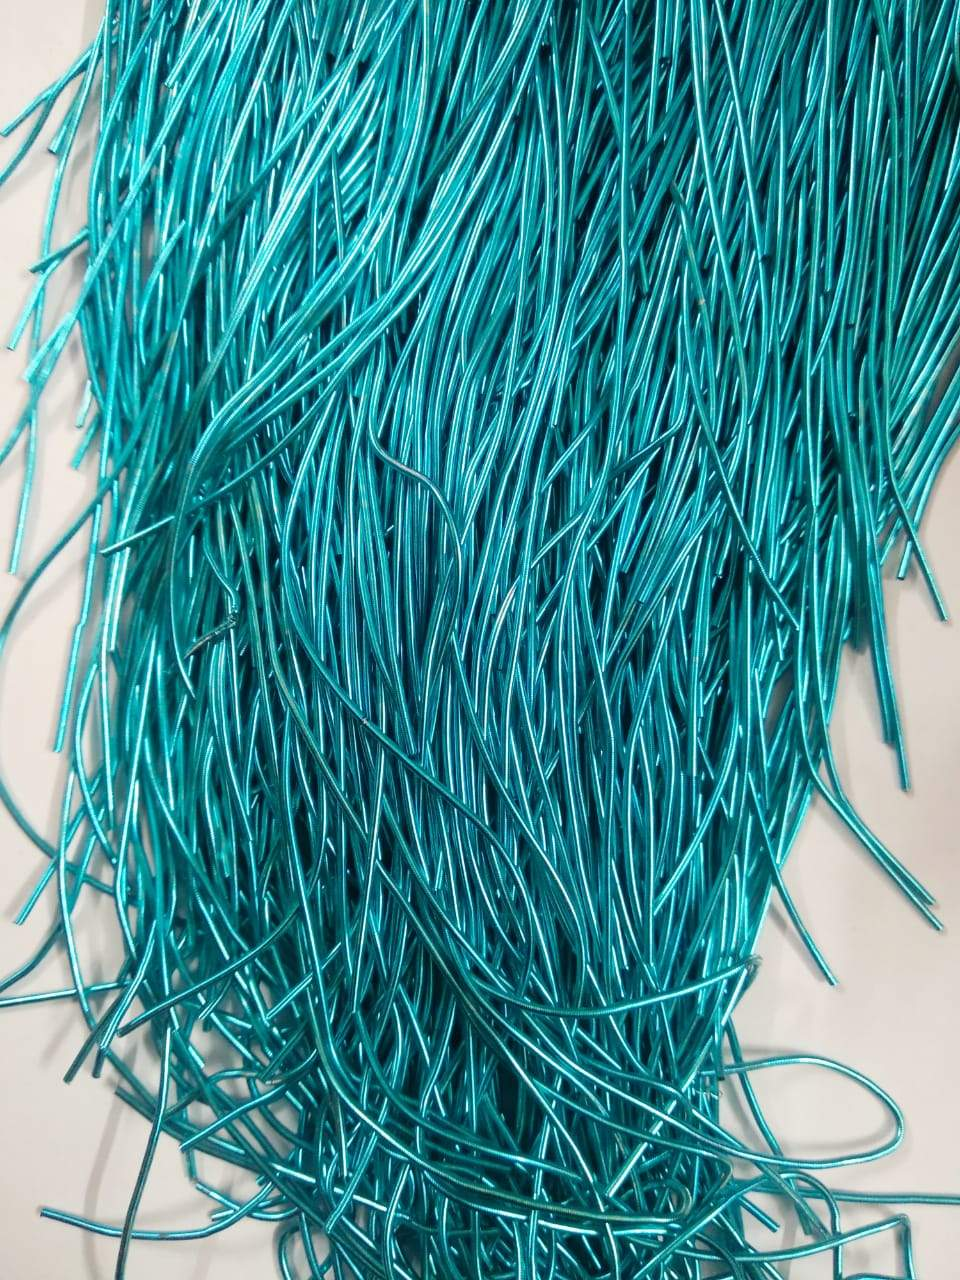 Zardhosi Blue Threads & Rope